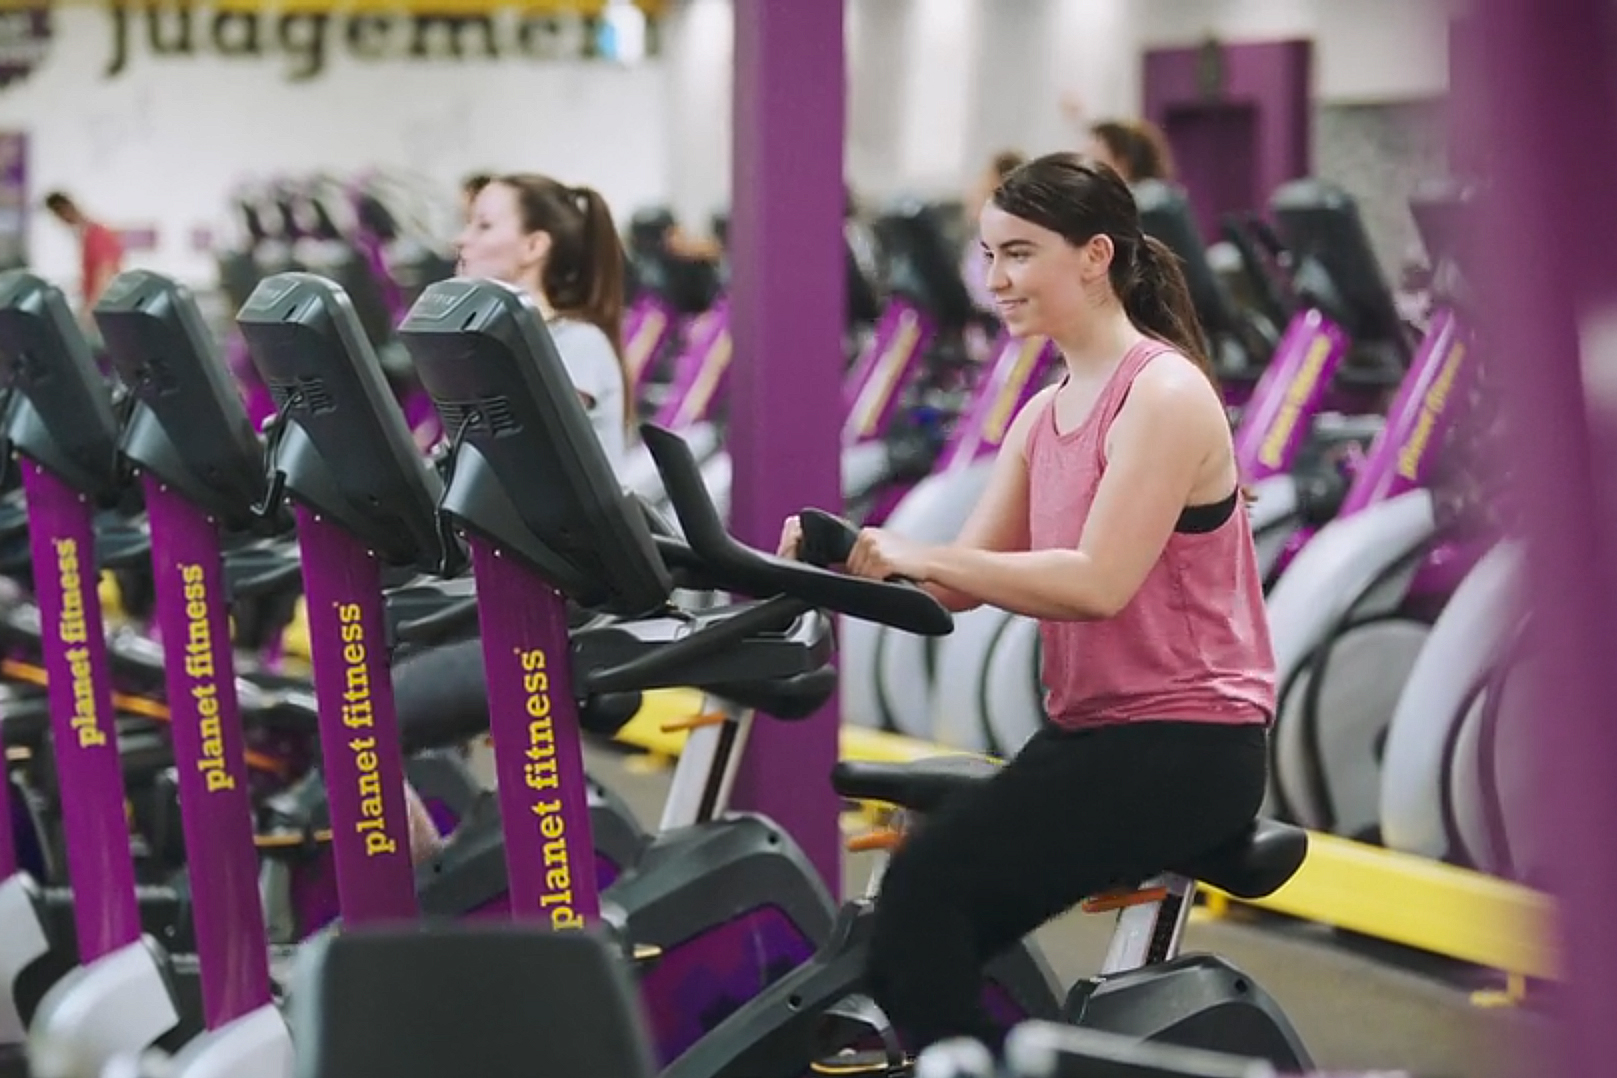 The biggest villain Planet Fitness will take on this year might surprise you: Marketer's Brief Podcast